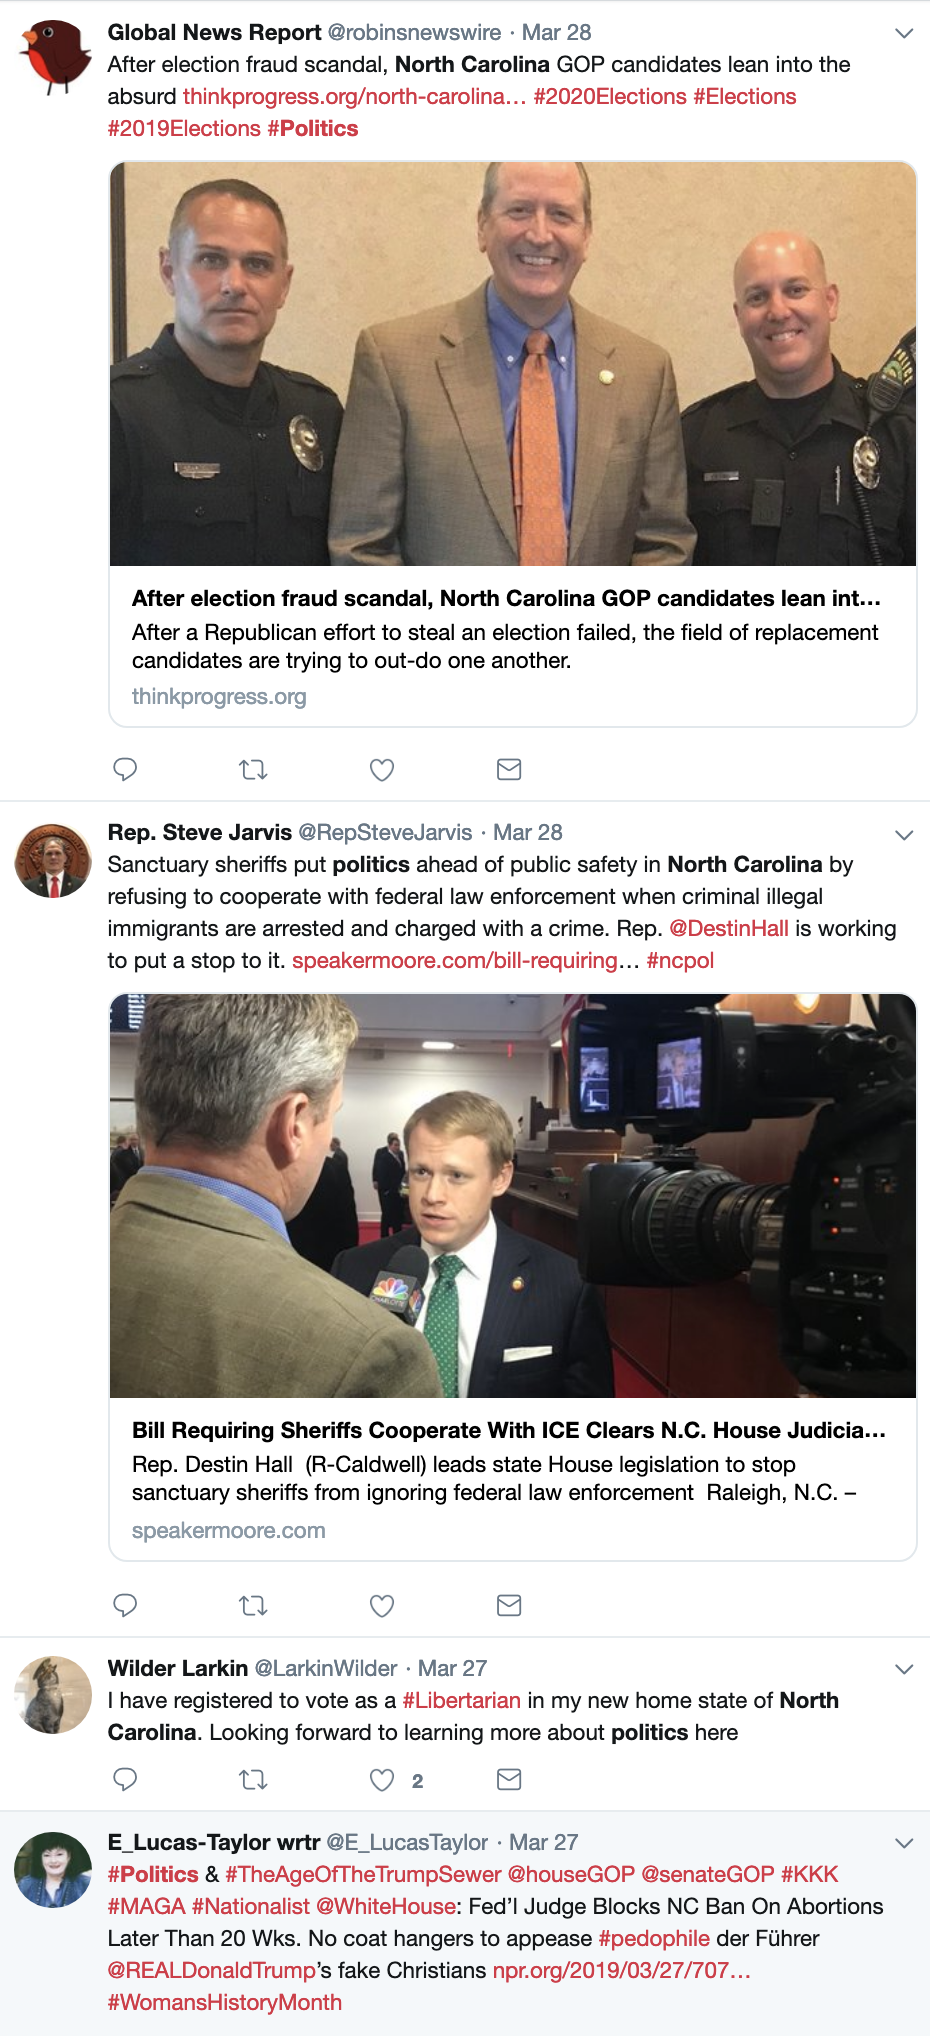 Screen-Shot-2019-04-02-at-3.06.44-PM BREAKING: Republican Party Chairman Indicted By The FBI Corruption Crime Donald Trump Election 2018 Politics Top Stories